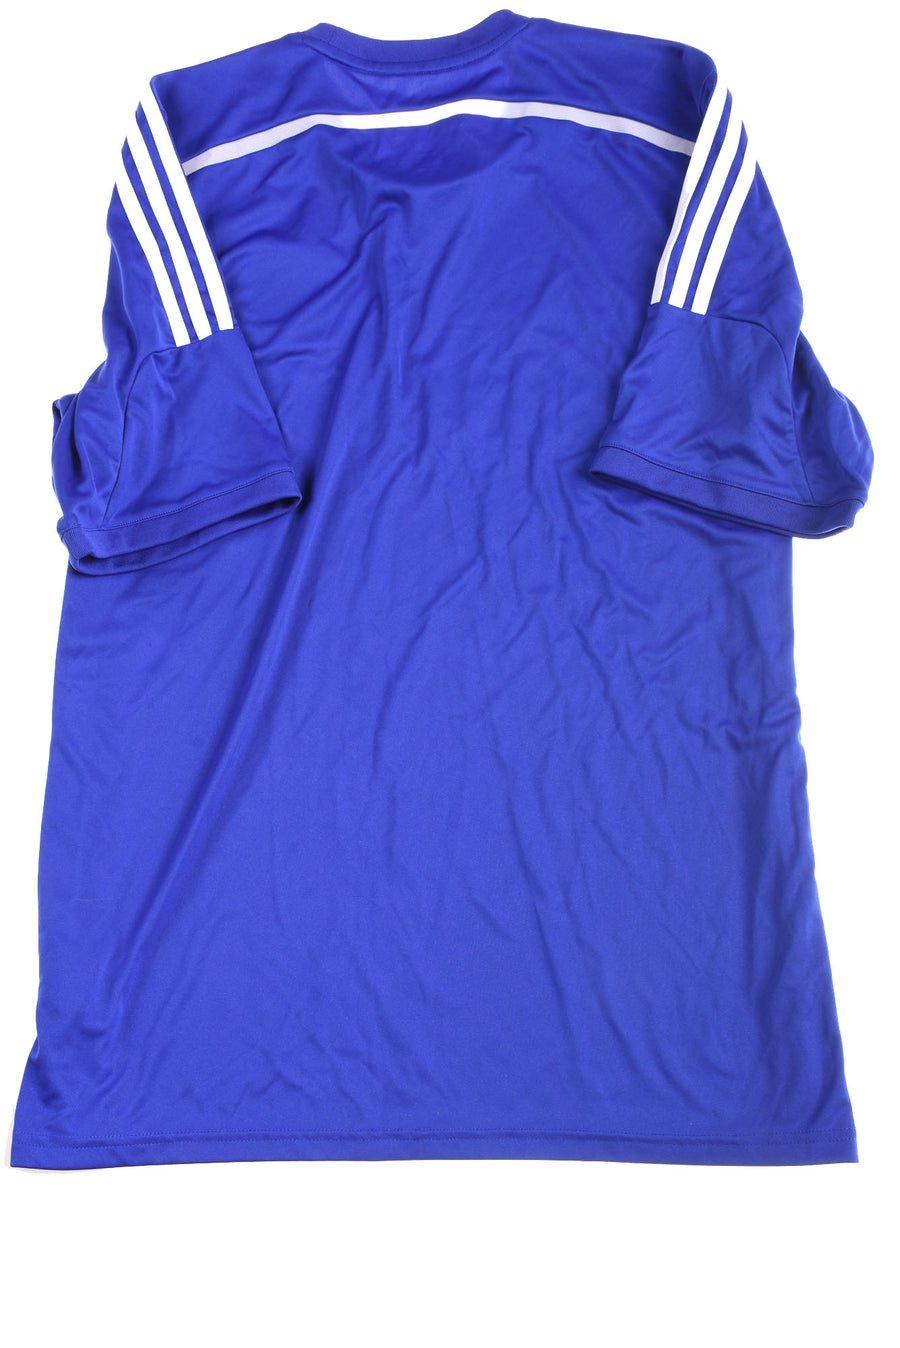 USED Adidas Men's Shirt X-Large Blue